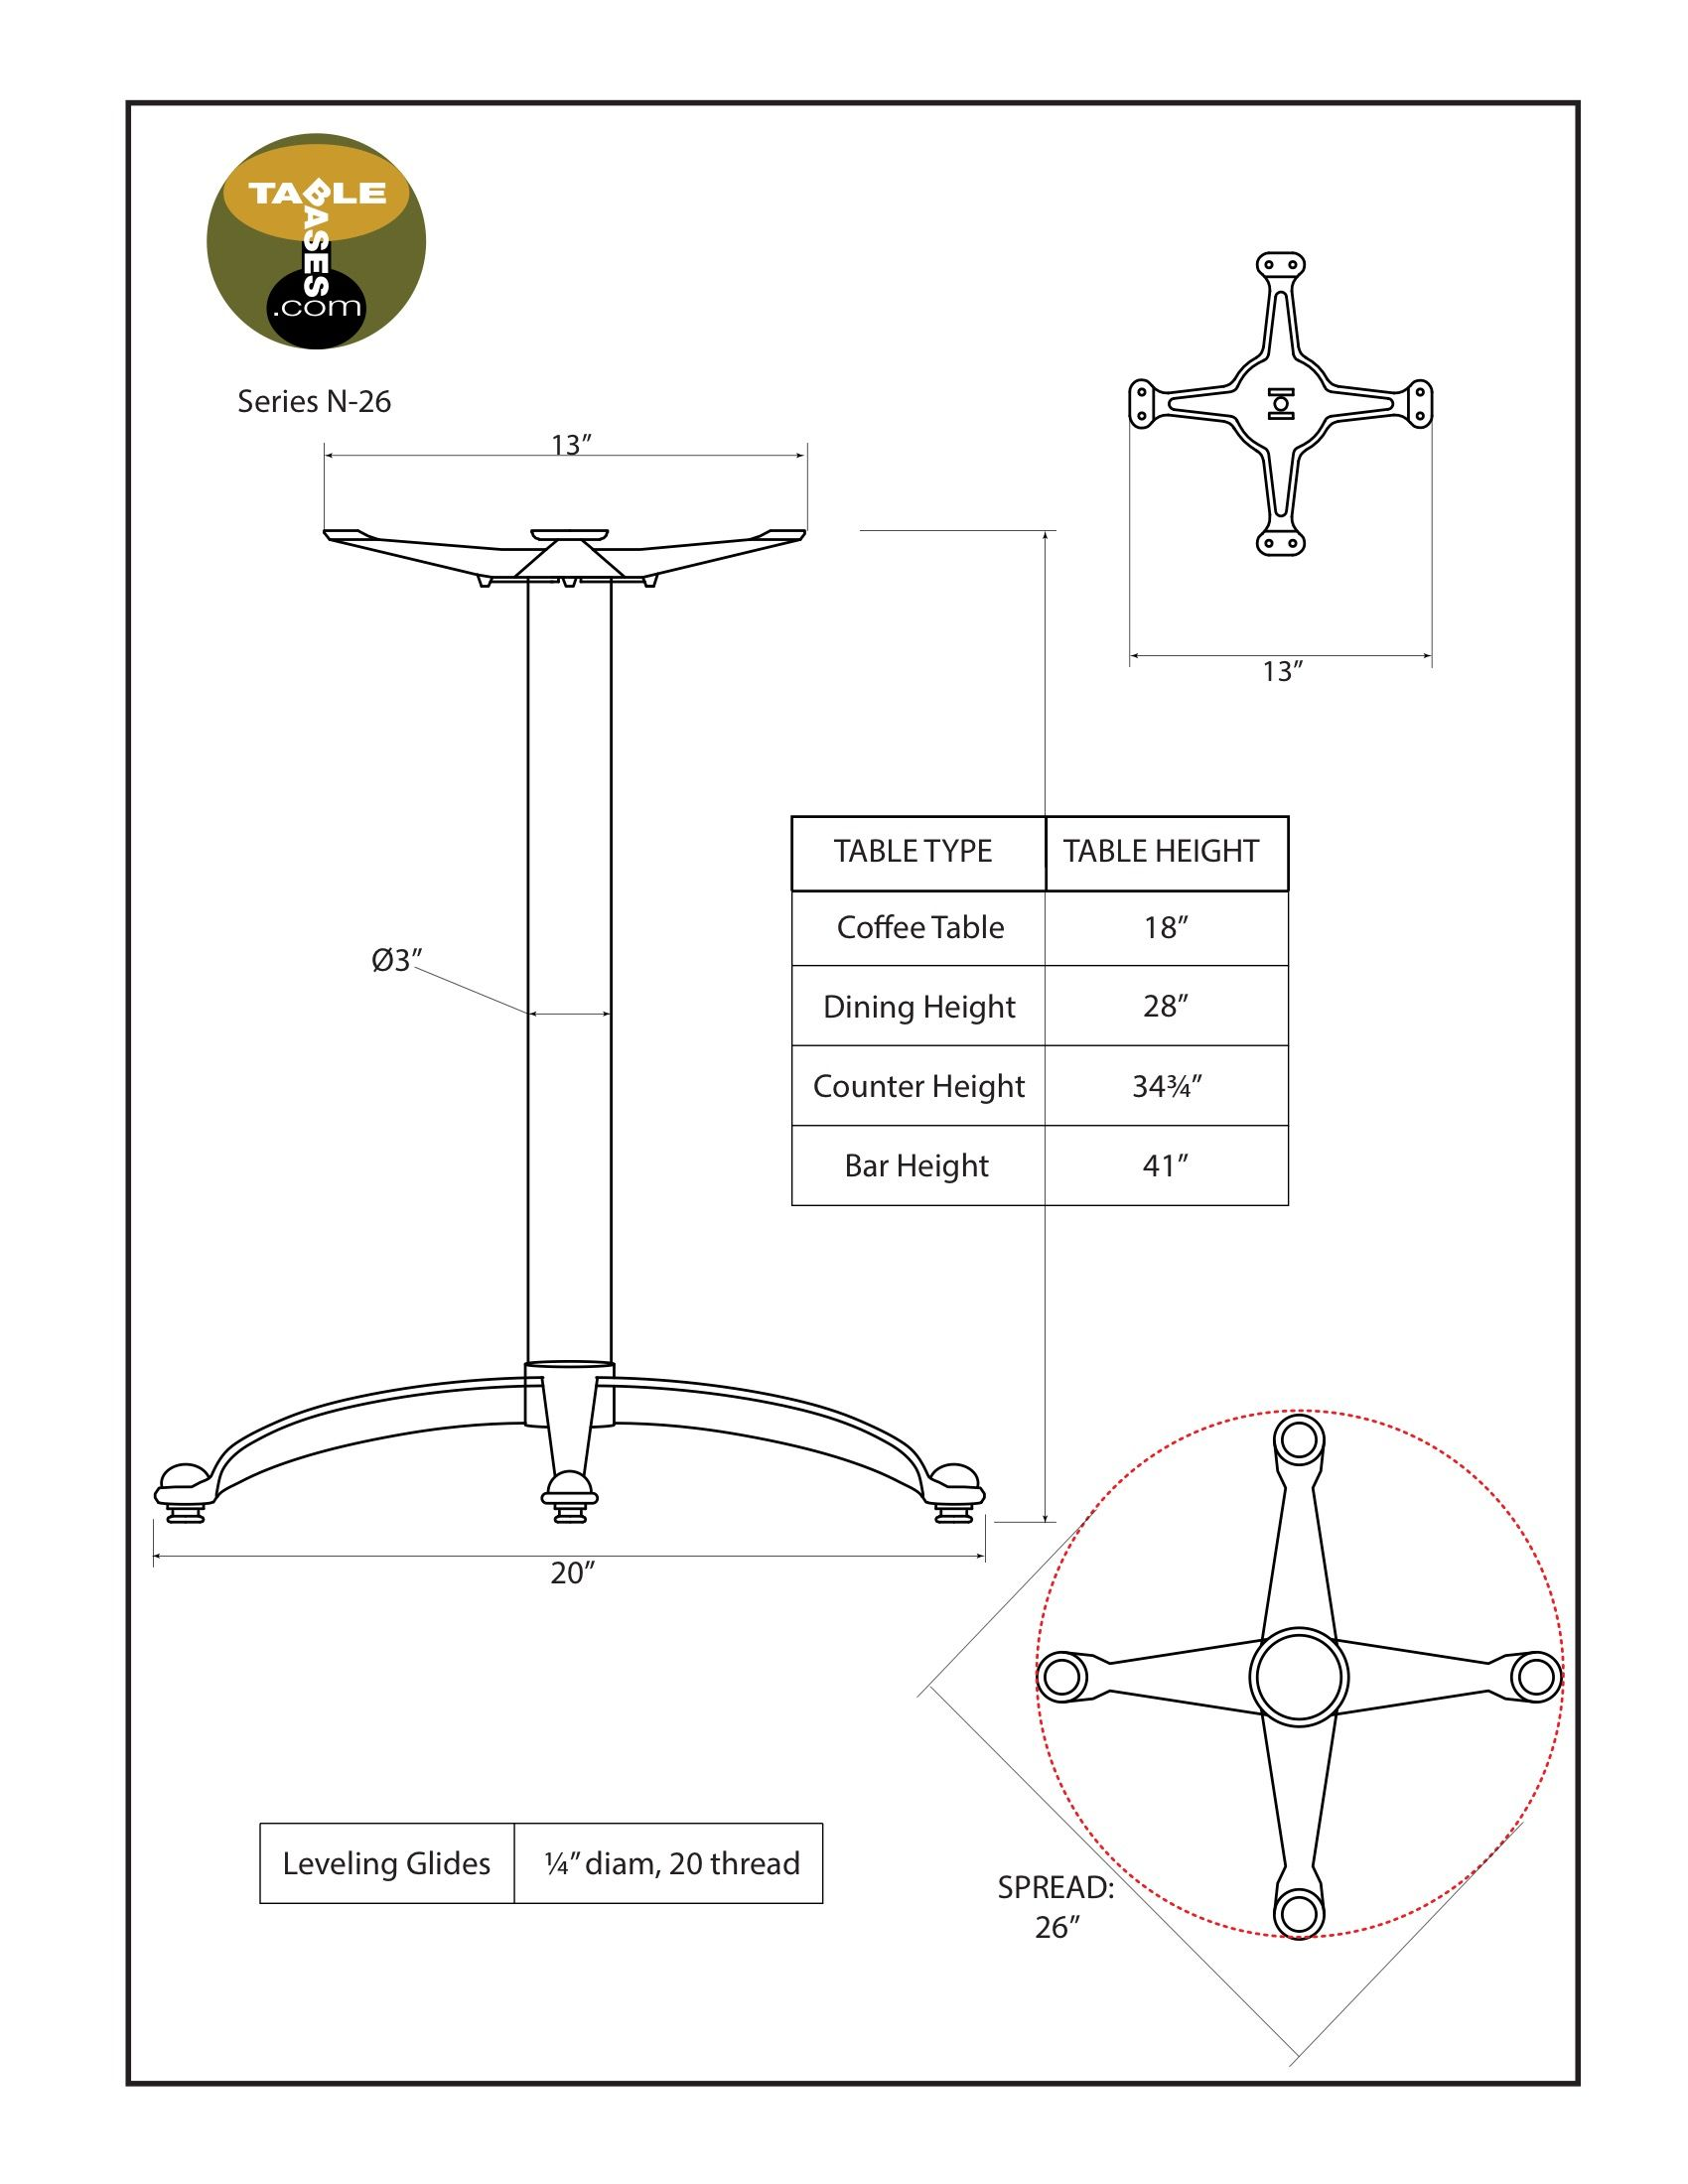 N26 Black Table Base - Specifications